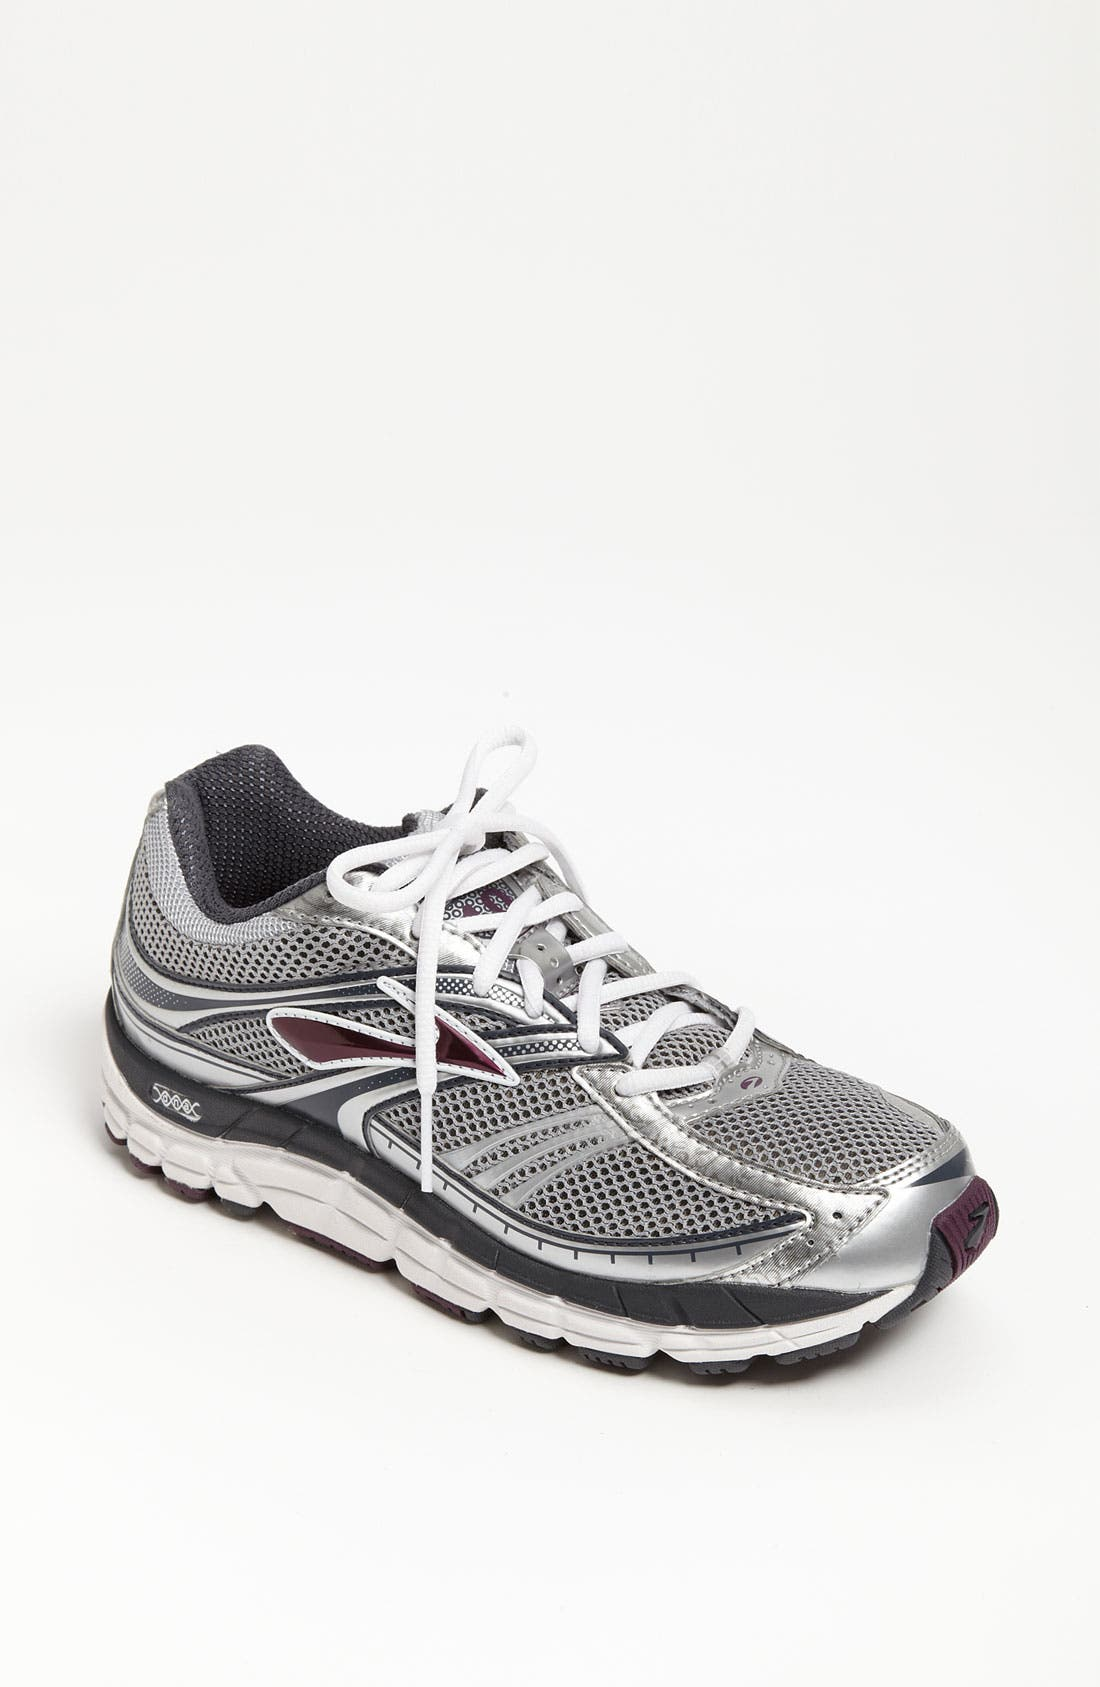 Alternate Image 1 Selected - Brooks 'Addiction 10' Running Shoe (Women)